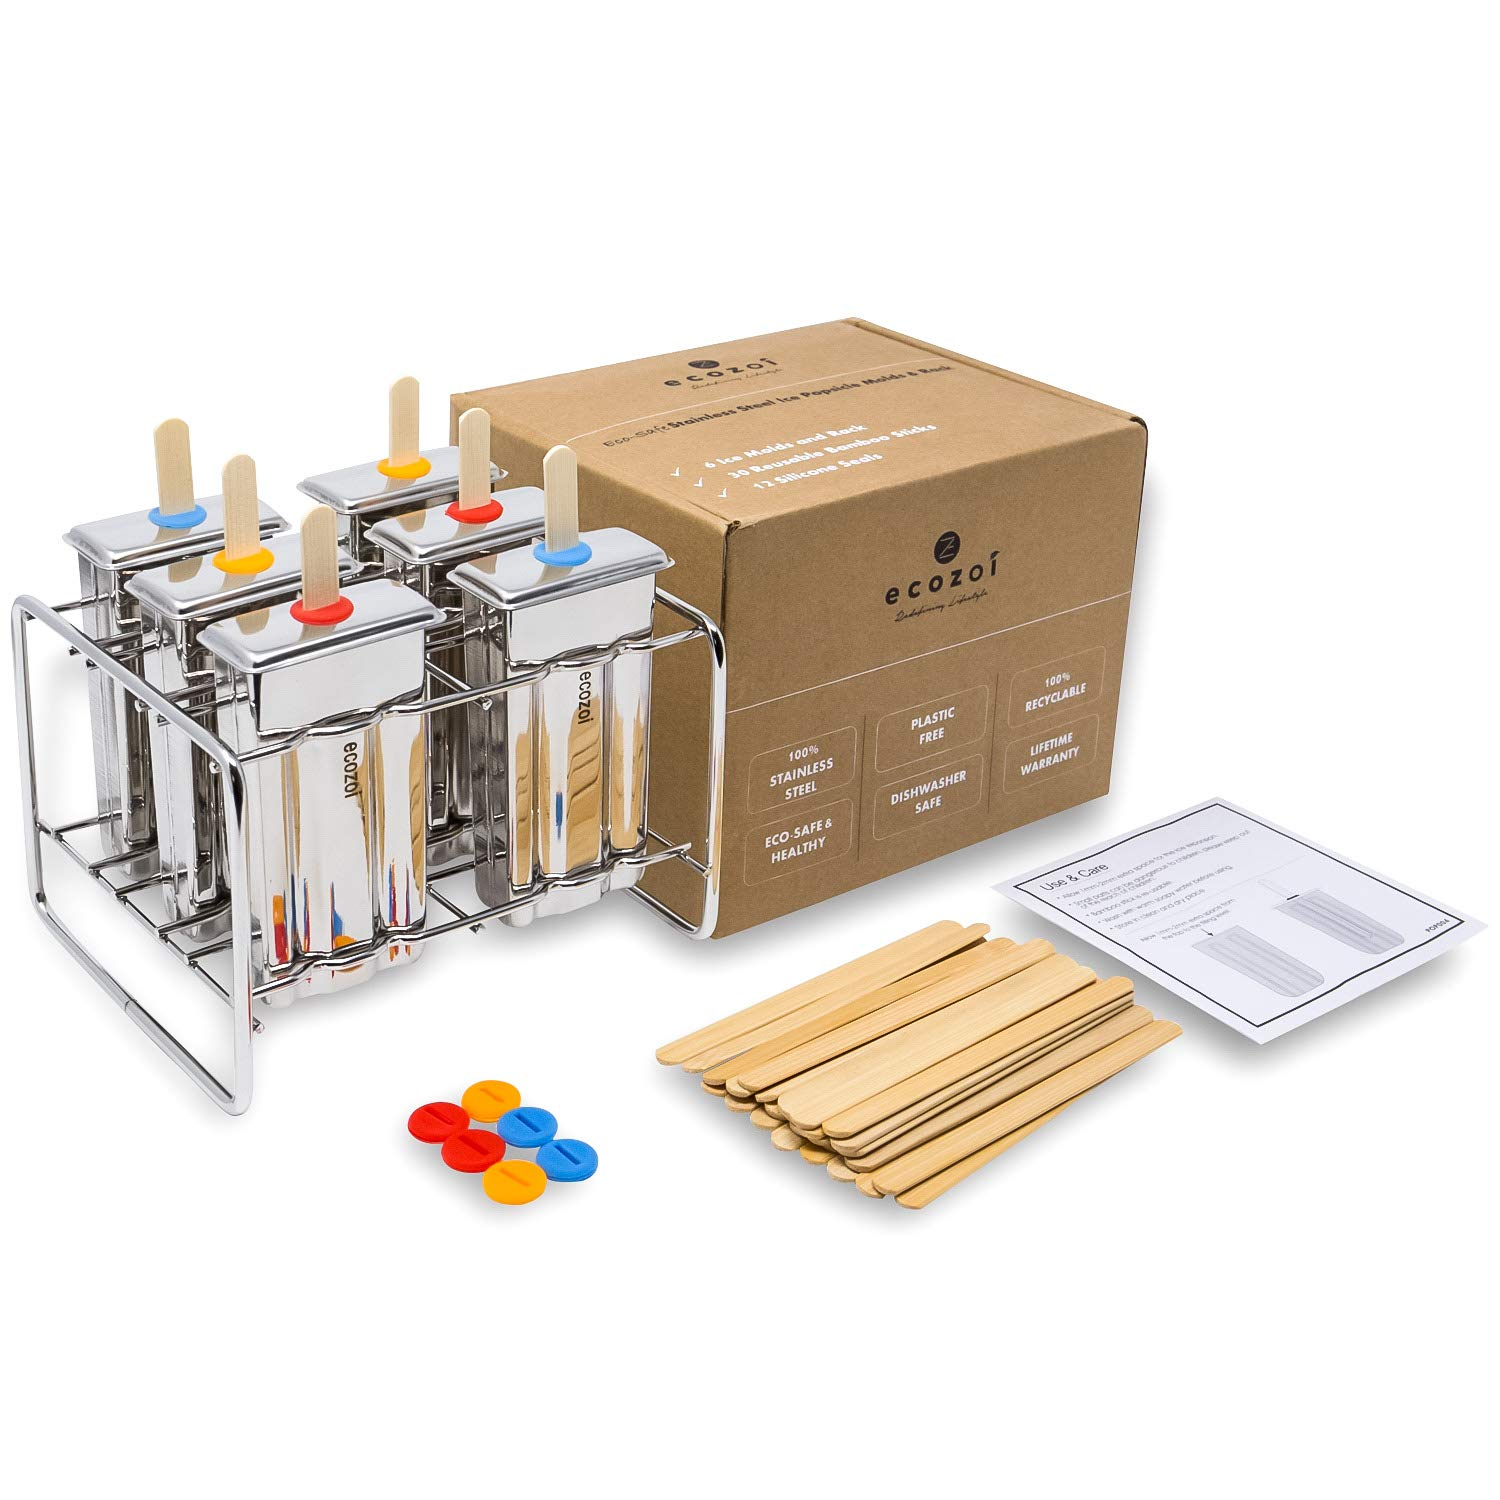 Ecozoi Eco-Safe Stainless Steel Popsicle Molds and Rack - 6 Ice Pop Makers  + 30 Reusable Bamboo Sticks + 12 Silicone Seals + 1 Rack - Foodie Gear